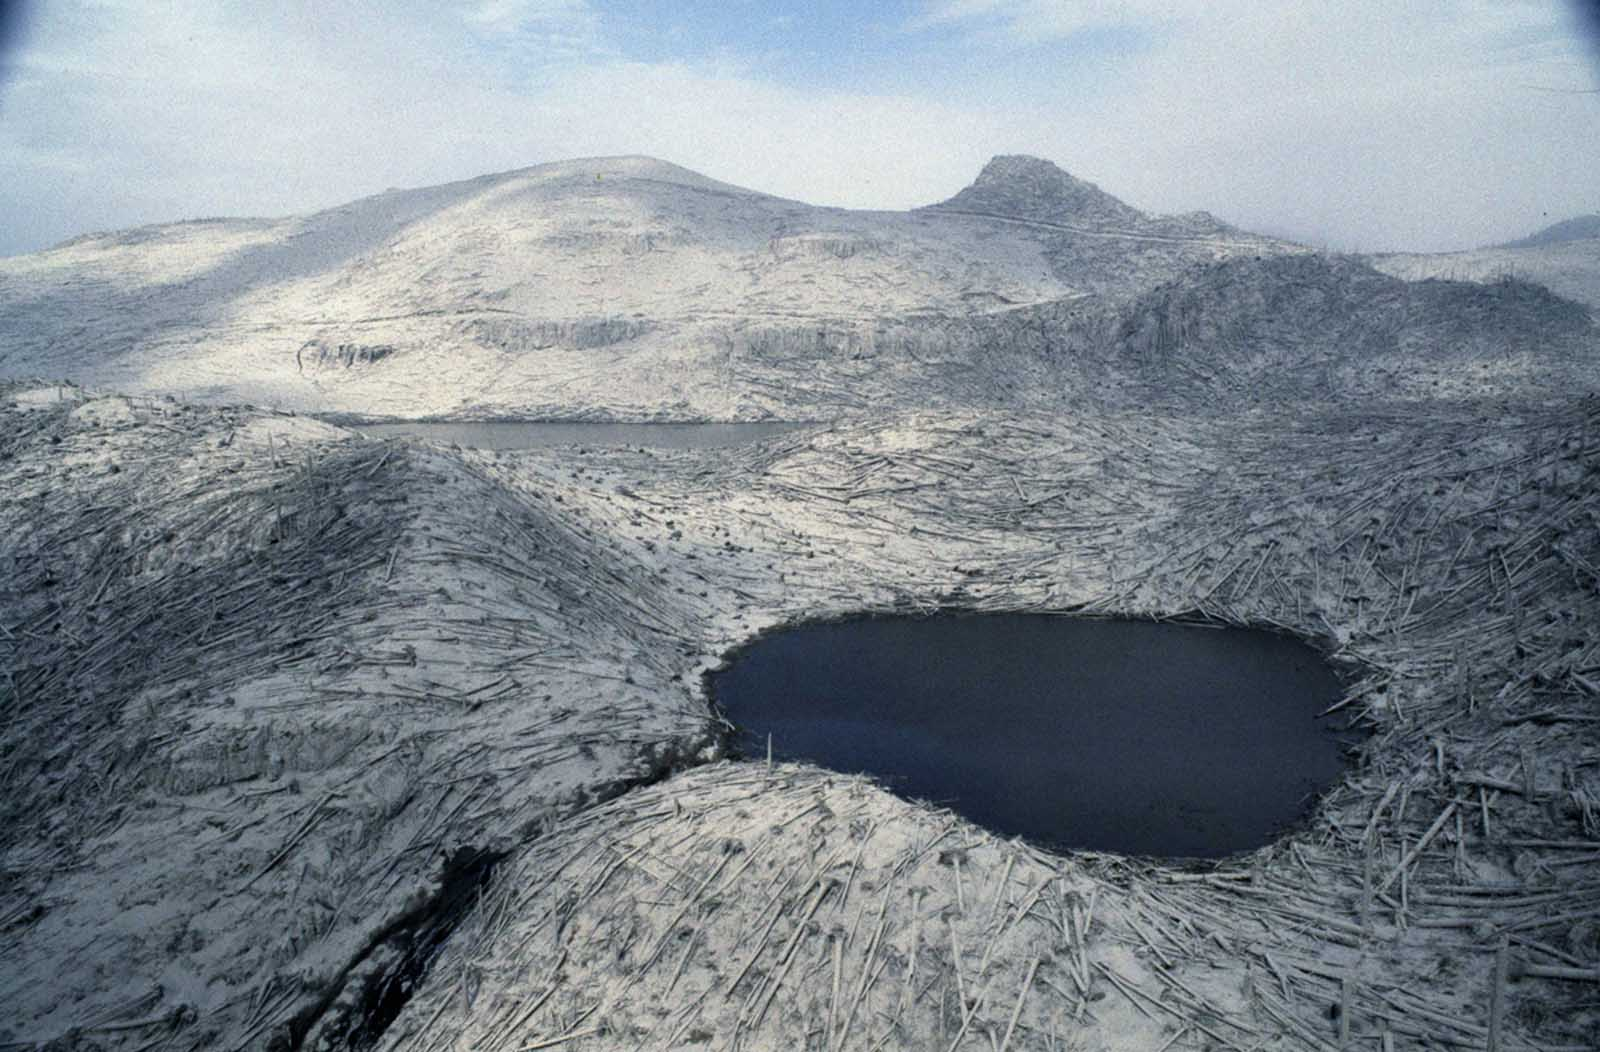 Denuded trees lay like matchsticks in the changed landscape around Mount St. Helens, shown two days after eruption, on May 20, 1980.